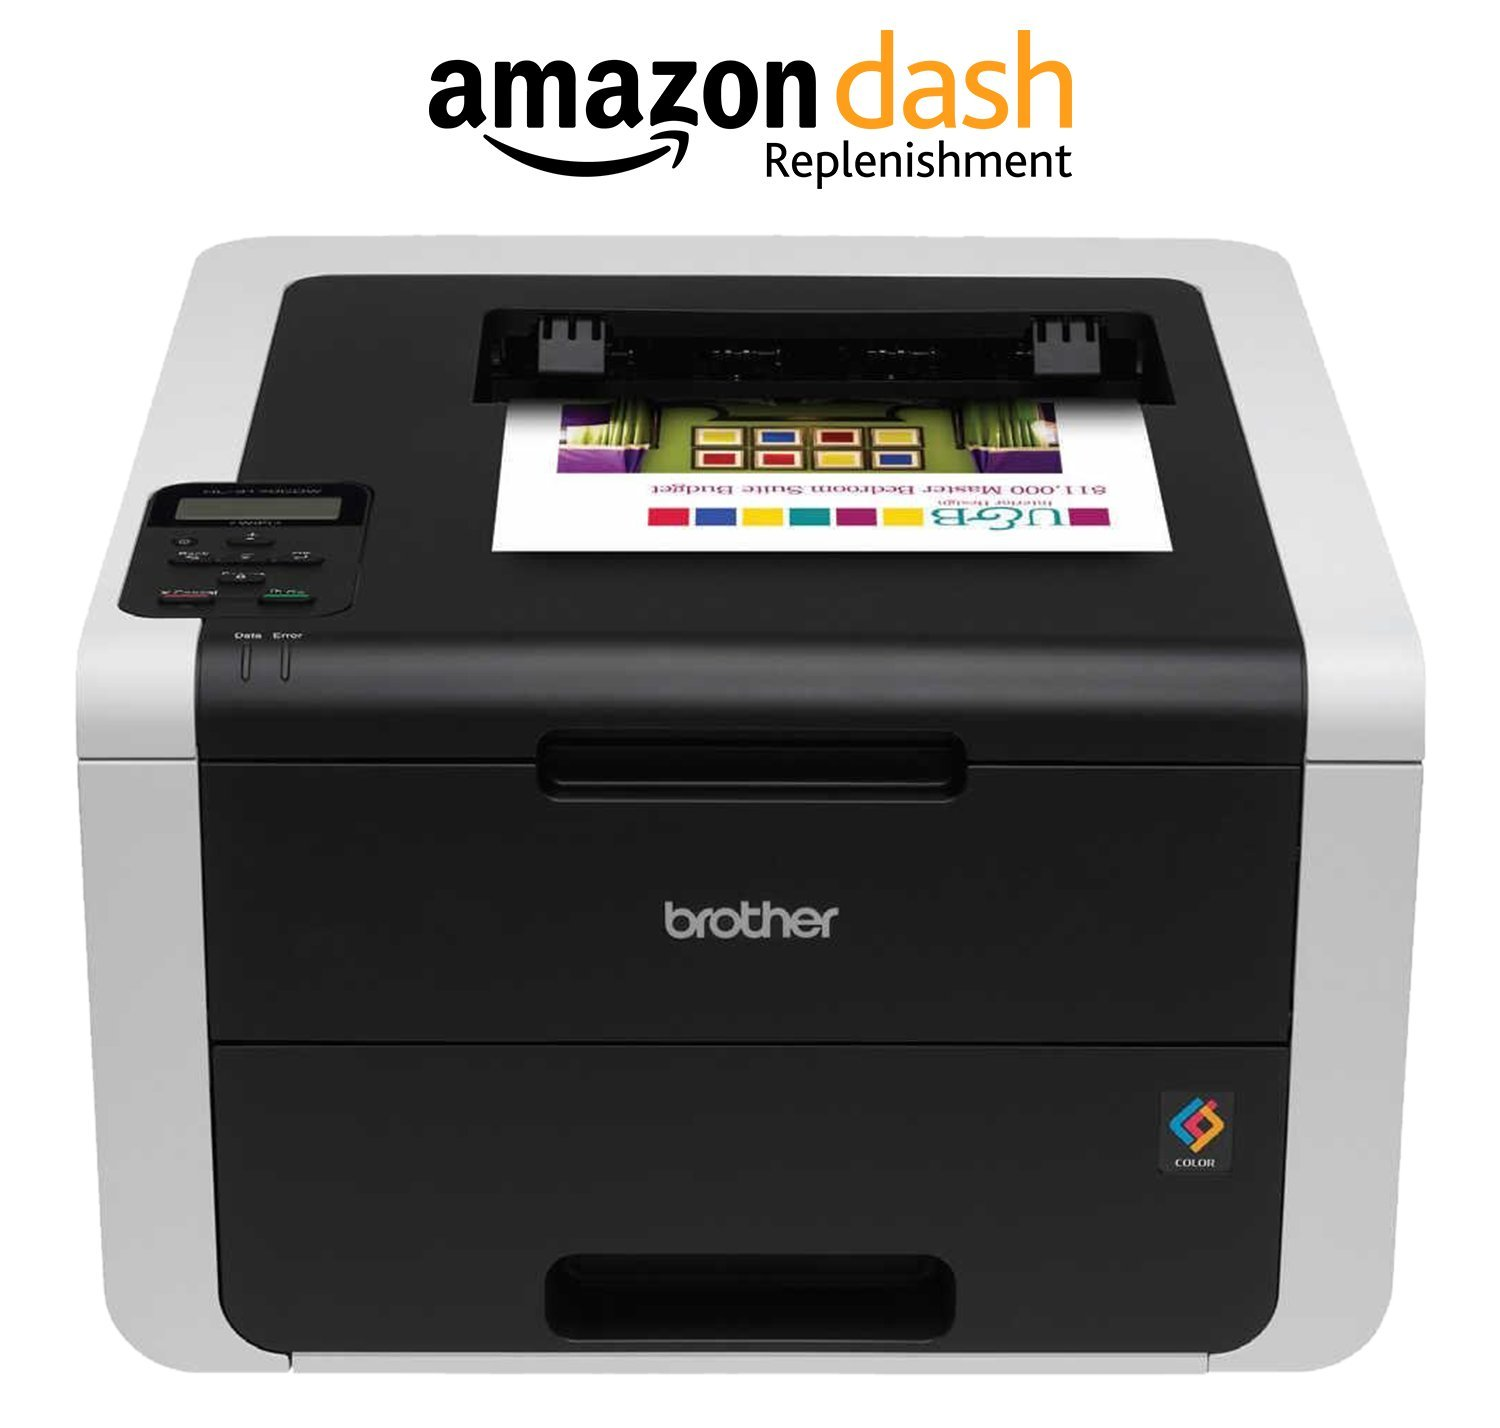 amazoncom brother hl 3170cdw digital color printer with wireless networking and duplex amazon dash replenishment enabled office products